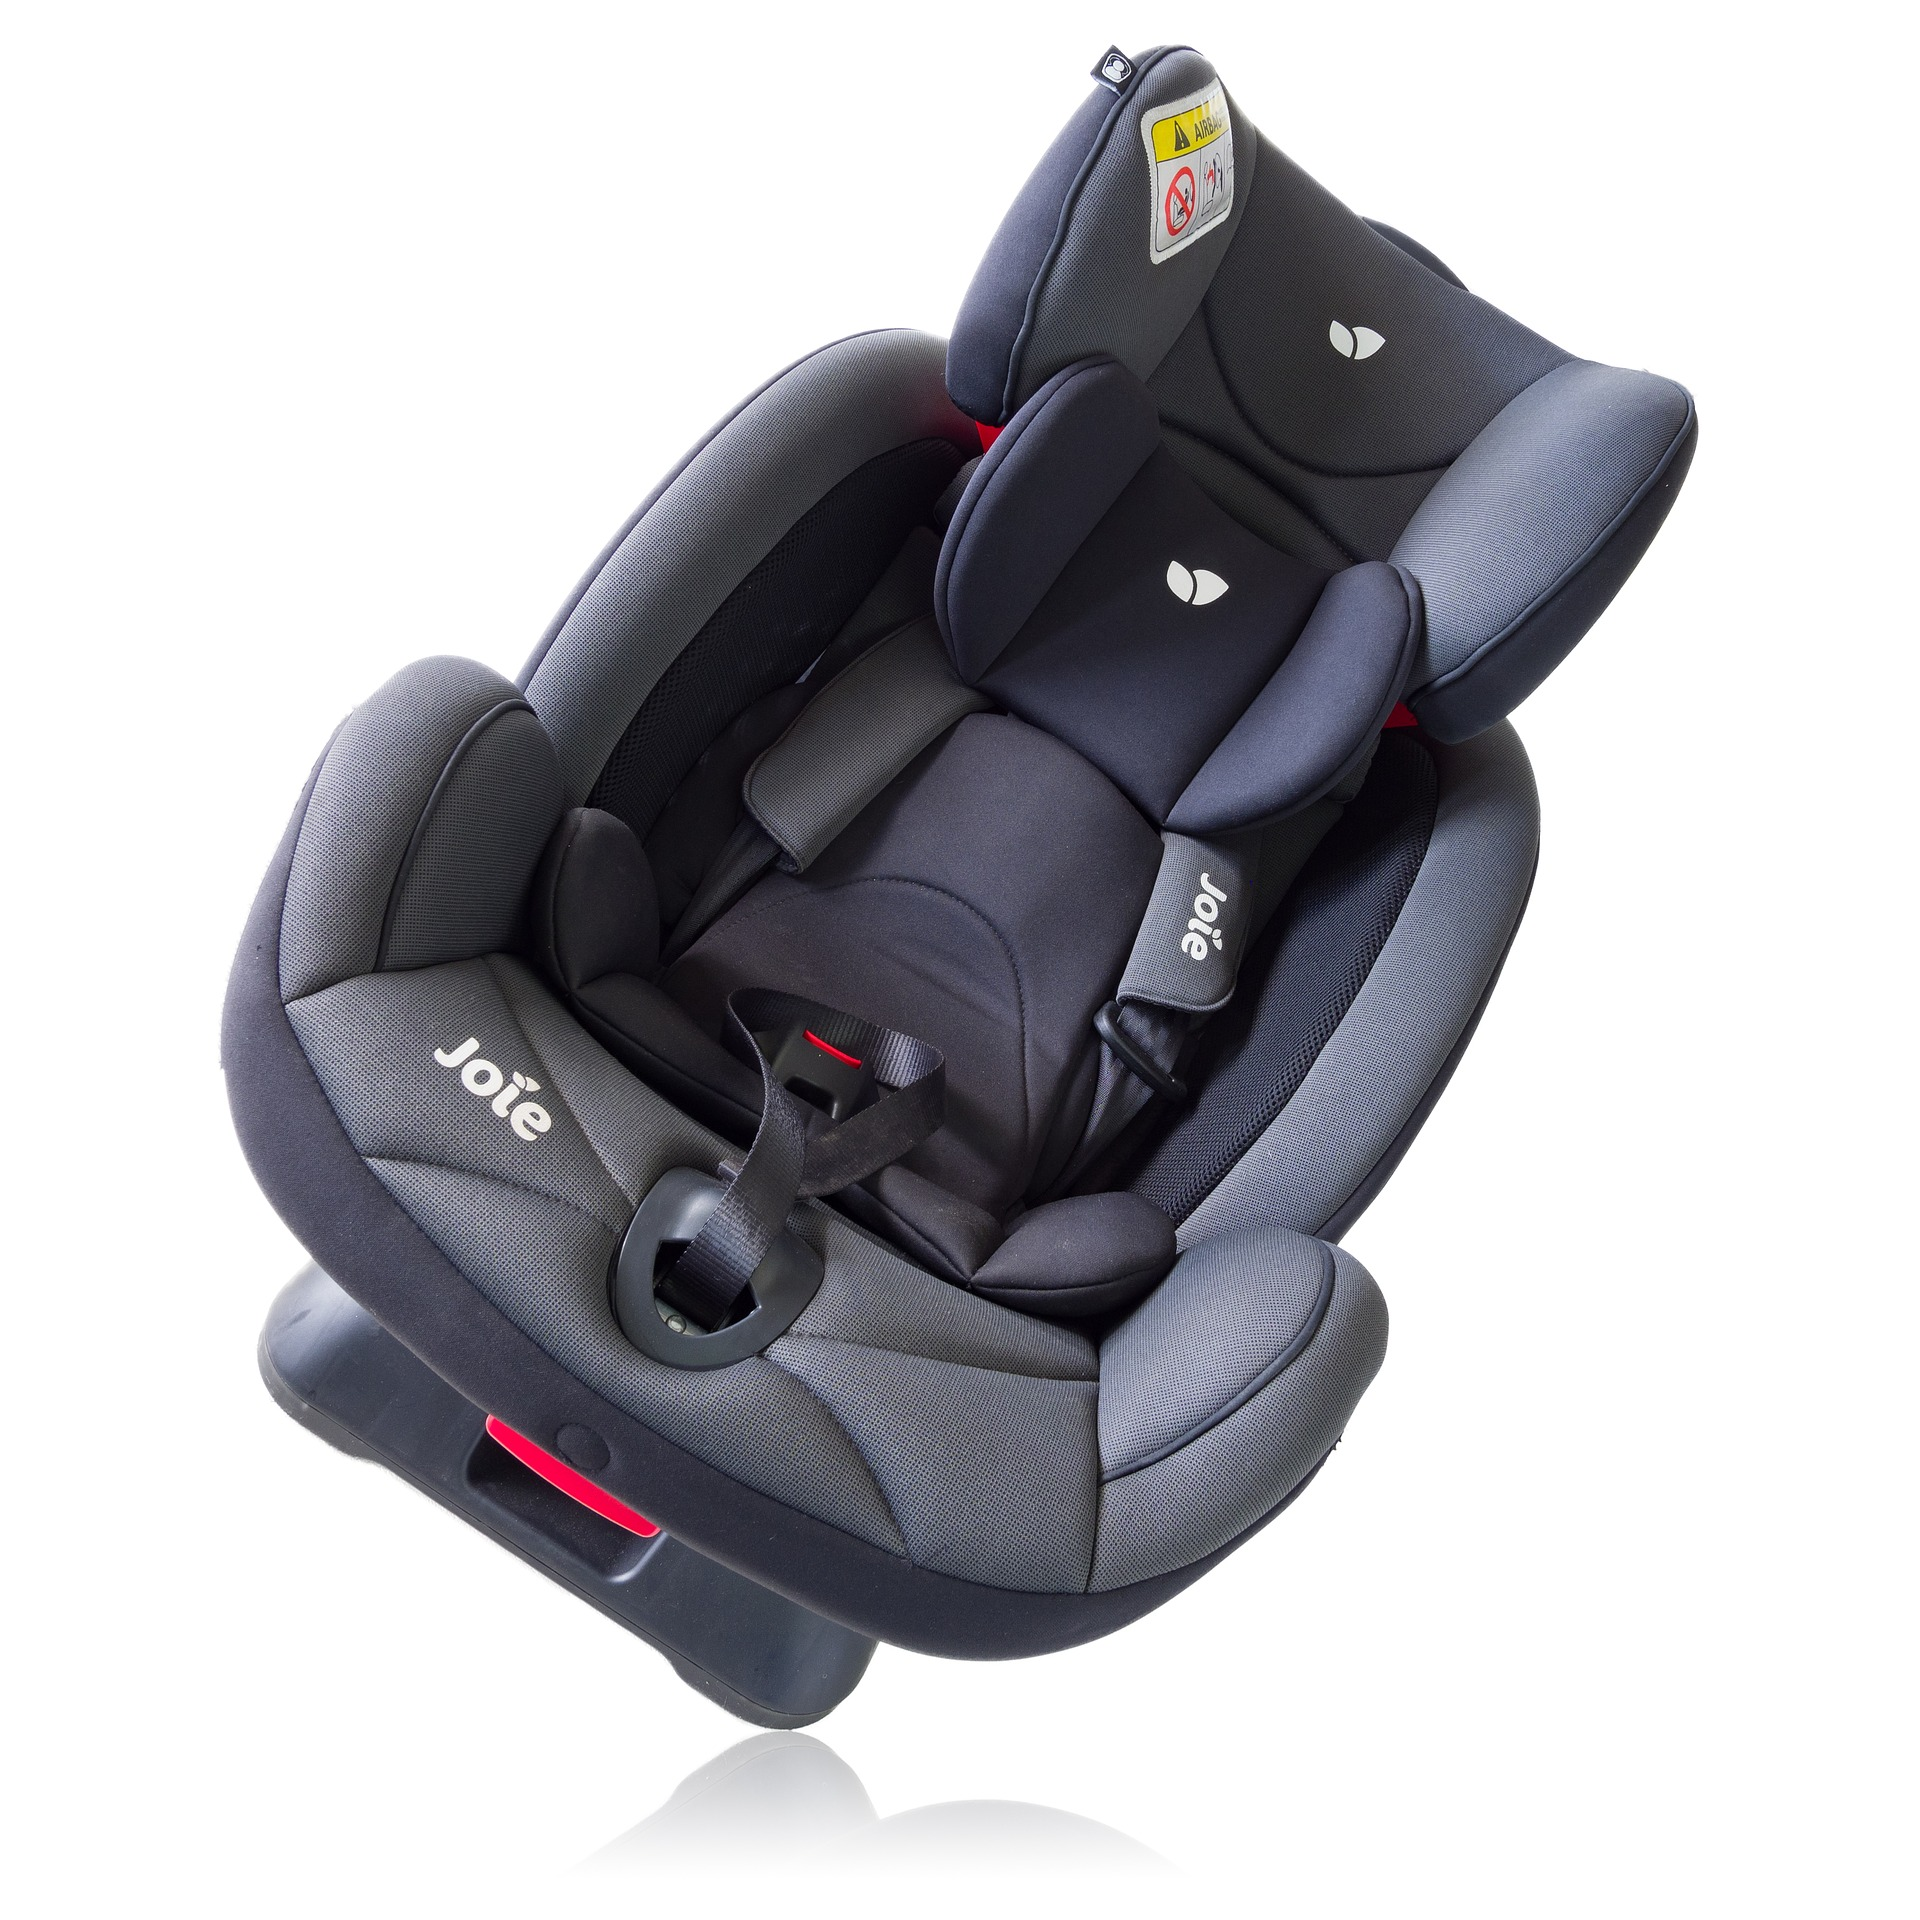 joie-baby-car-seat-3785975_1920